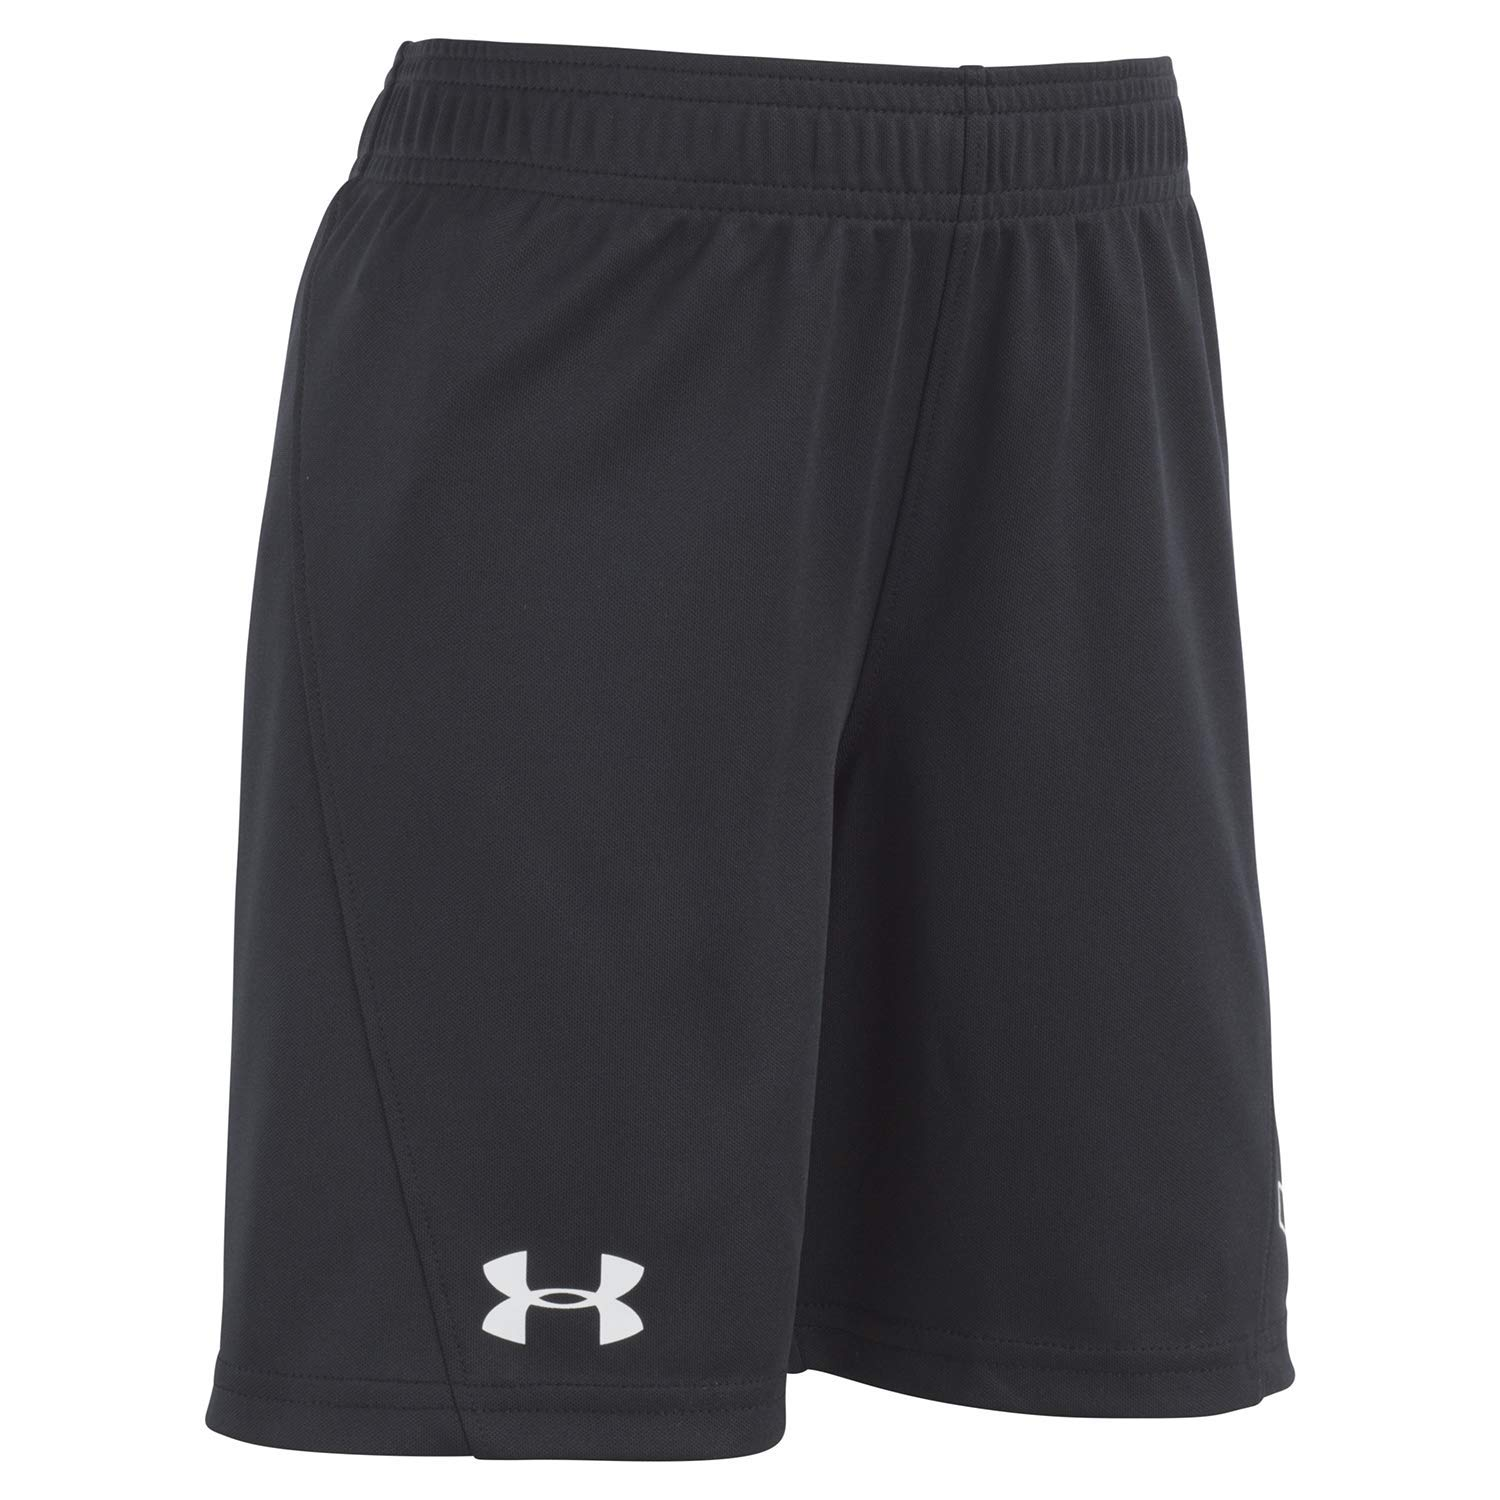 Under Armour Boys' Toddler Kick Off Short, Black, 2T